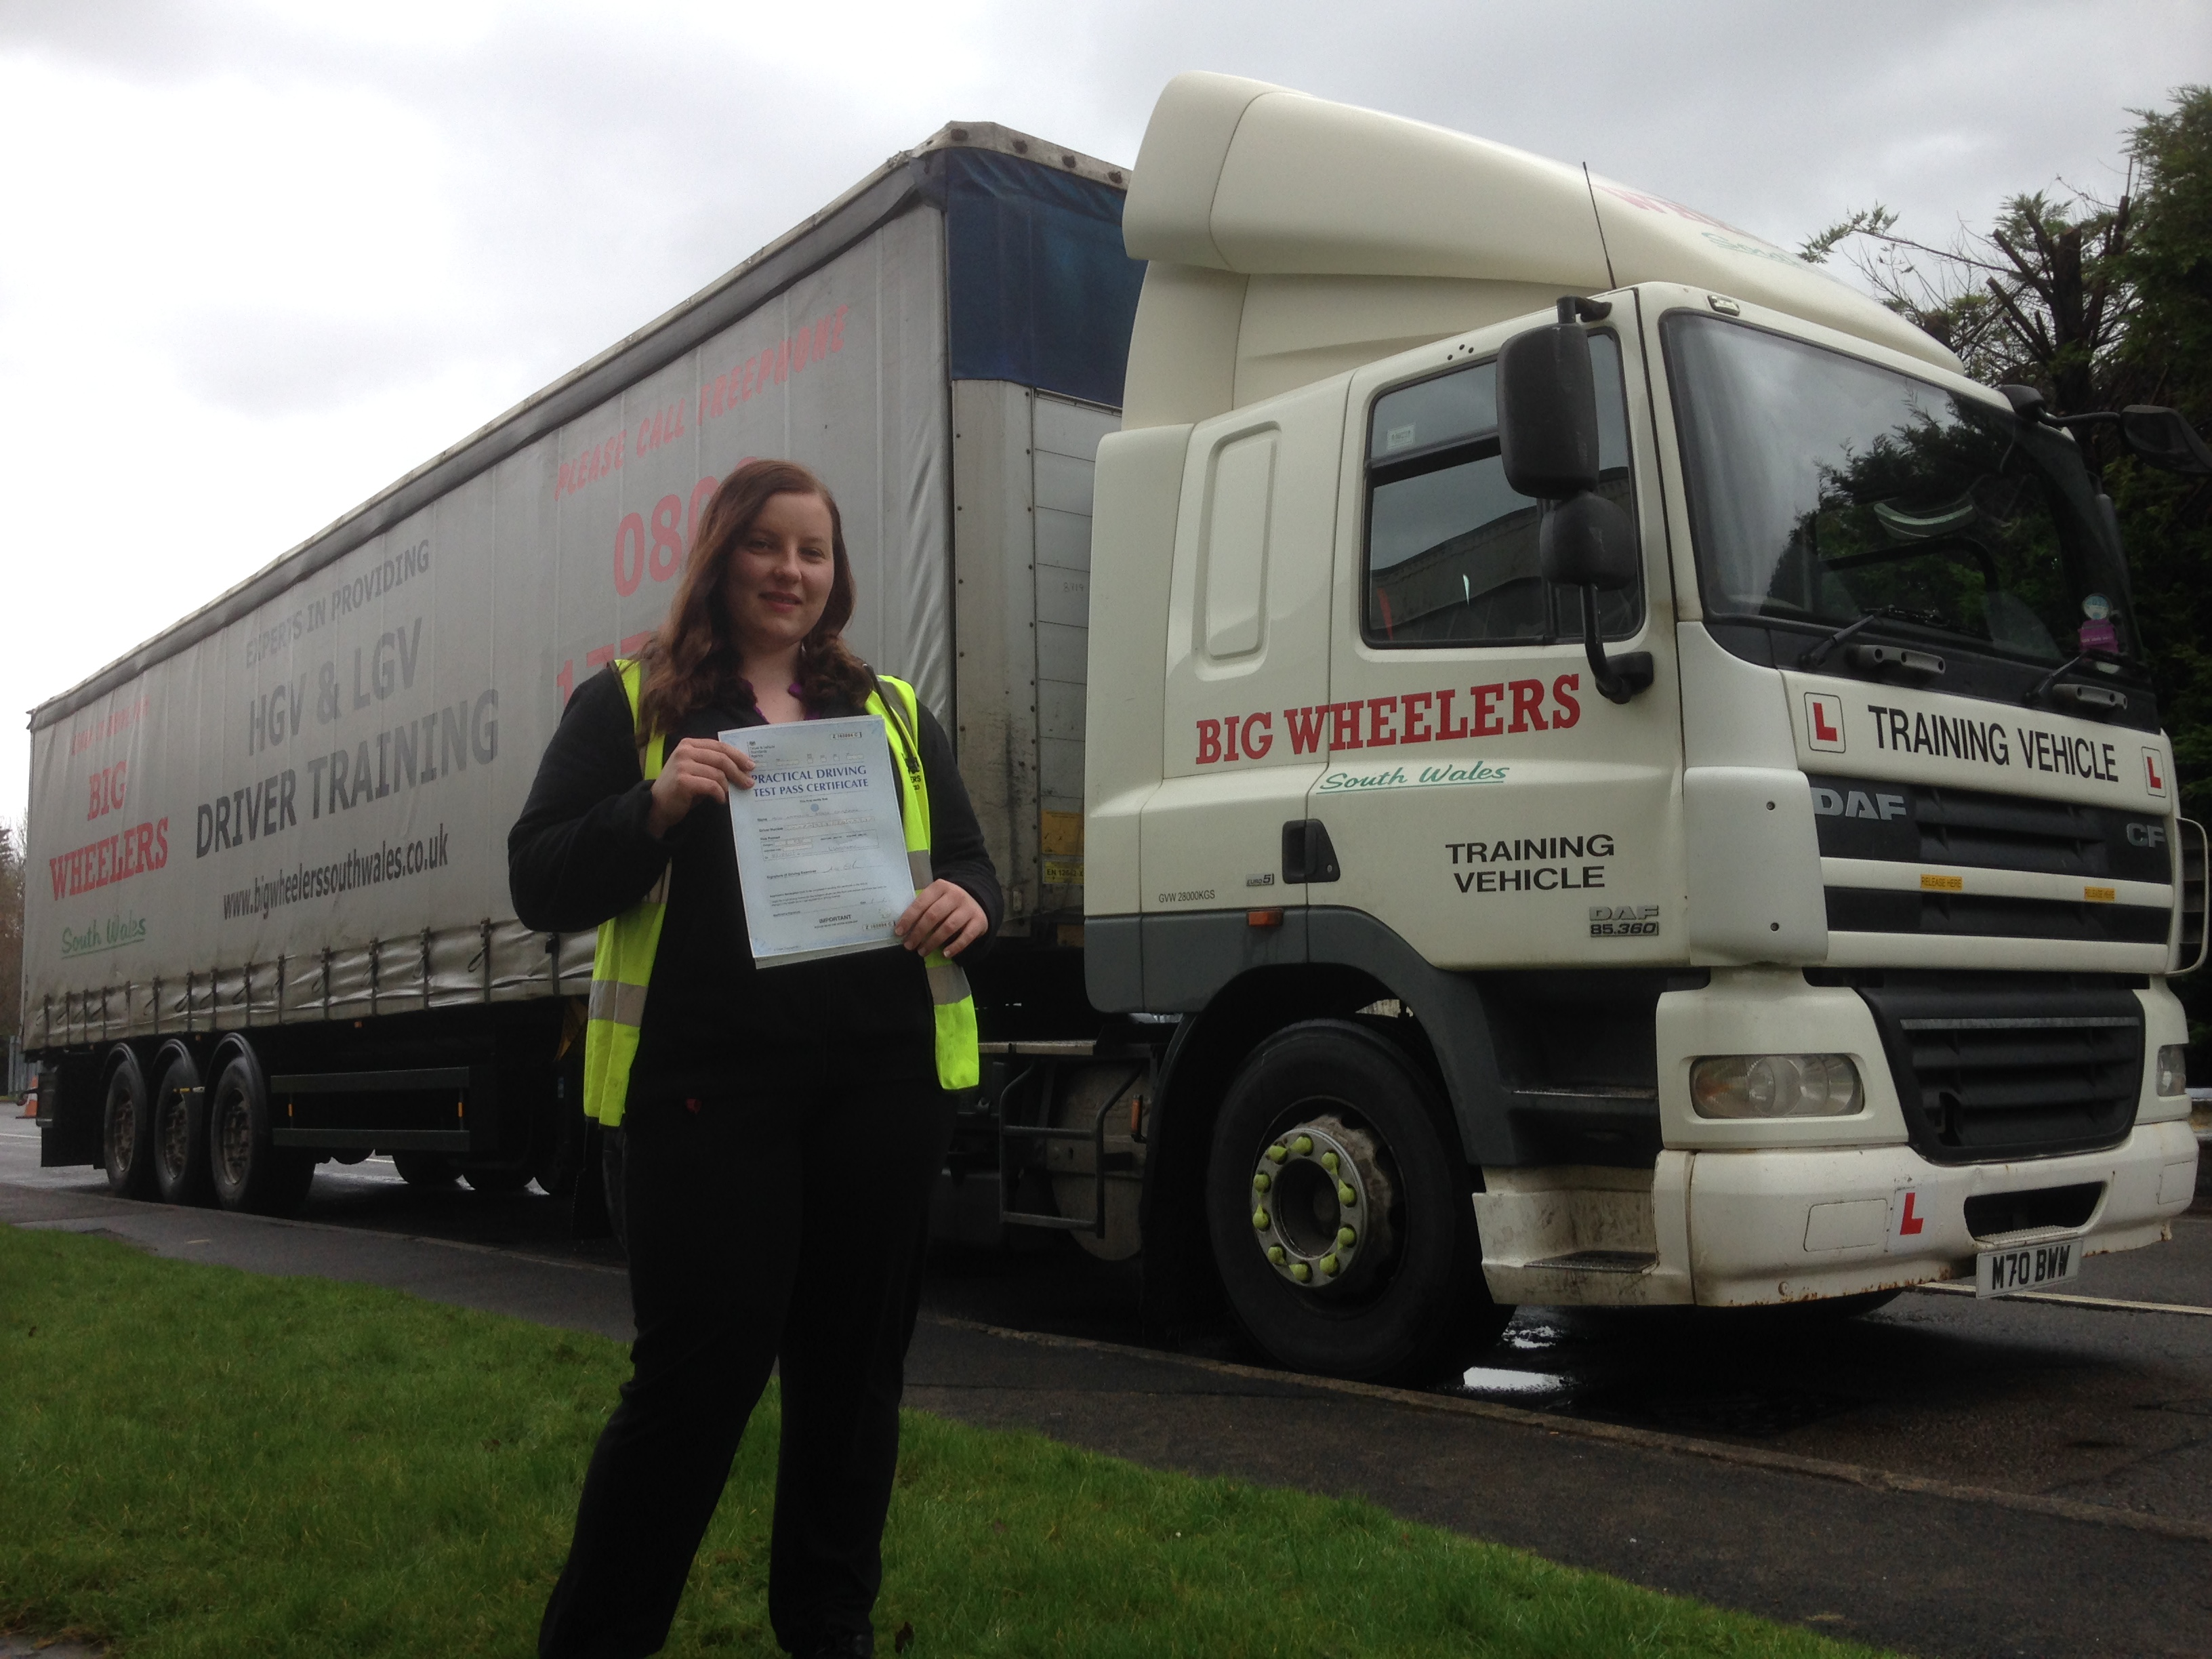 LGV C+E (HGV Class 1) Training Package (20 hours) for a Professional Artic Truck Driver